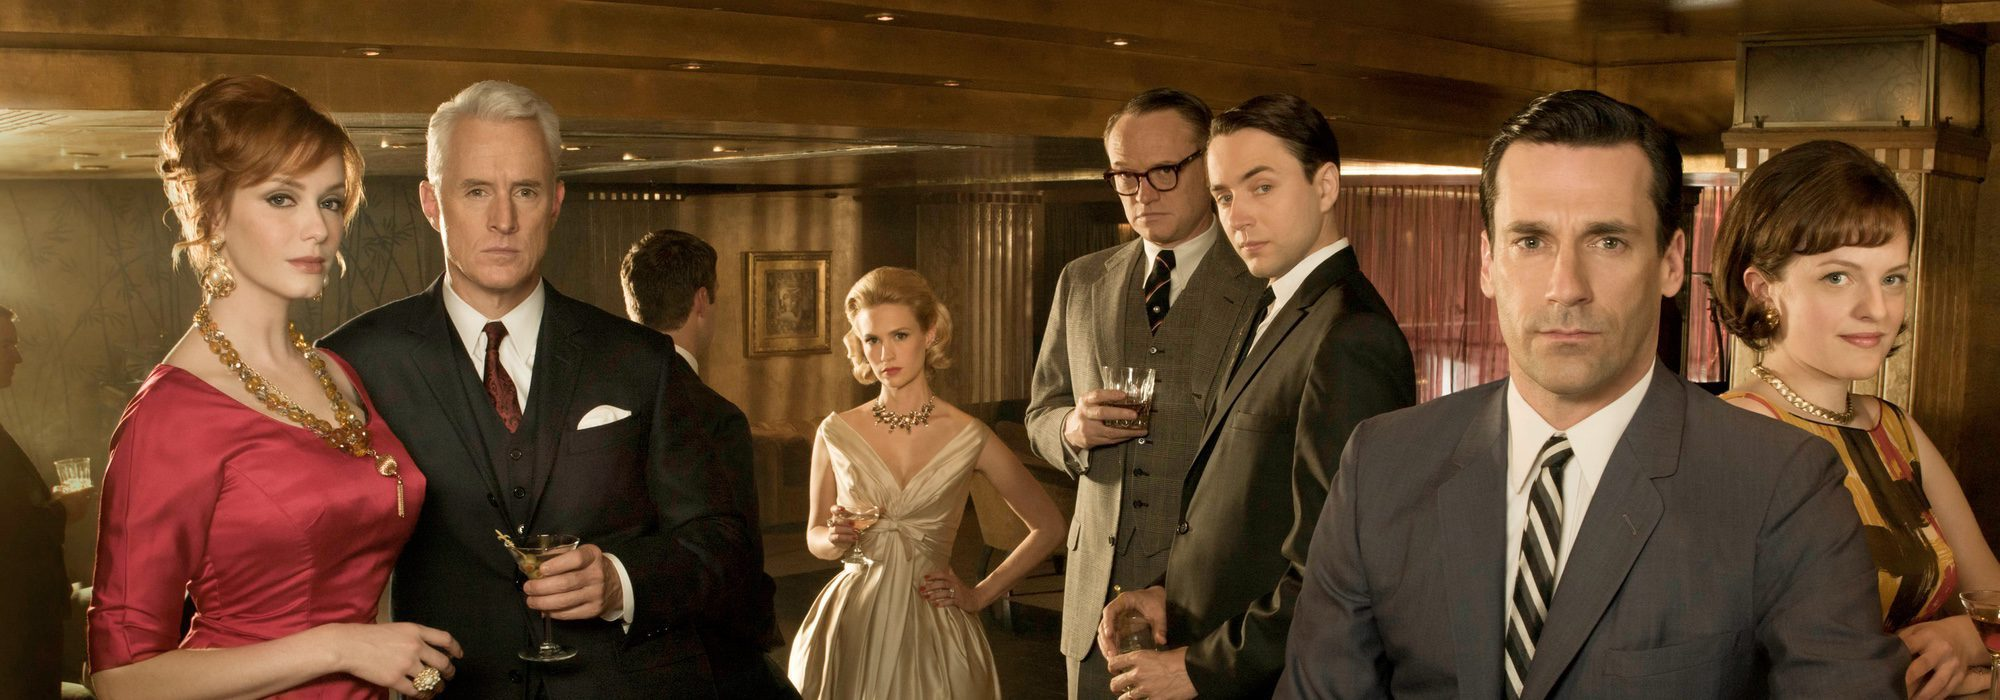 Mad Men. Serie TV - FormulaTV